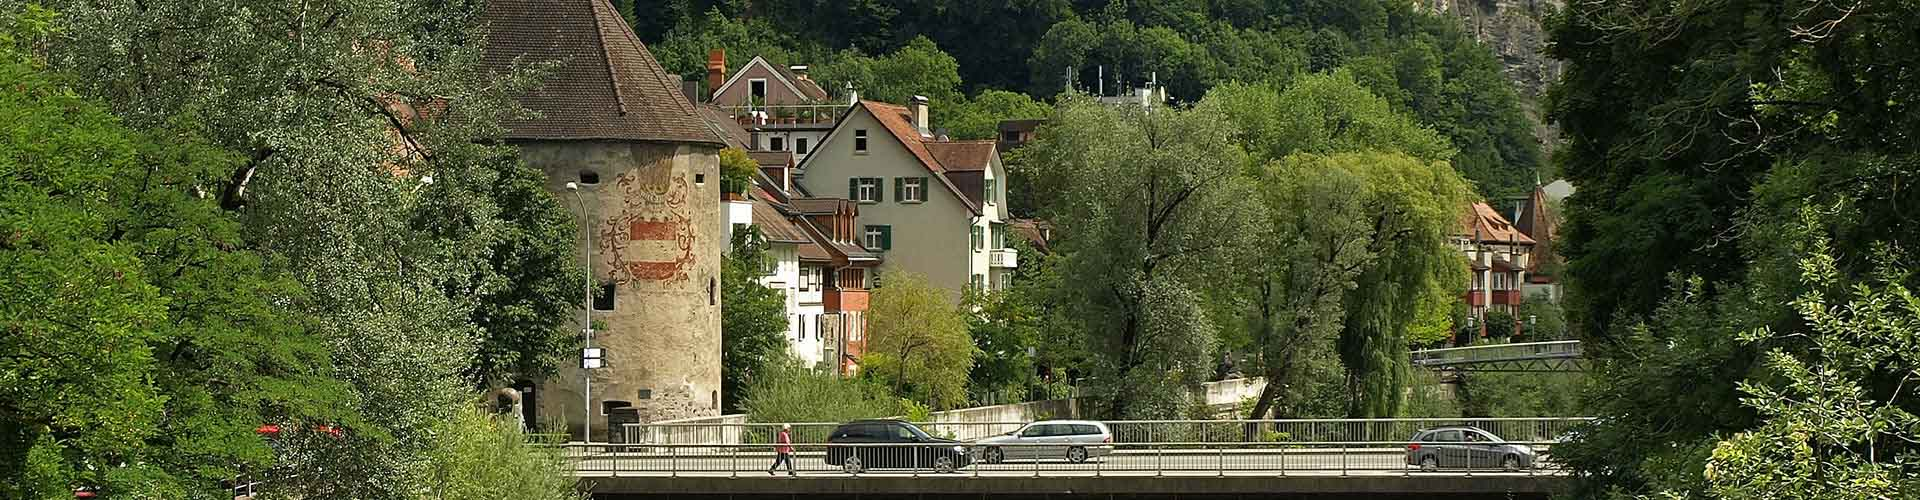 Feldkirch – Hotels in Feldkirch. Maps of Feldkirch, Photos and Reviews for each Hotel in Feldkirch.